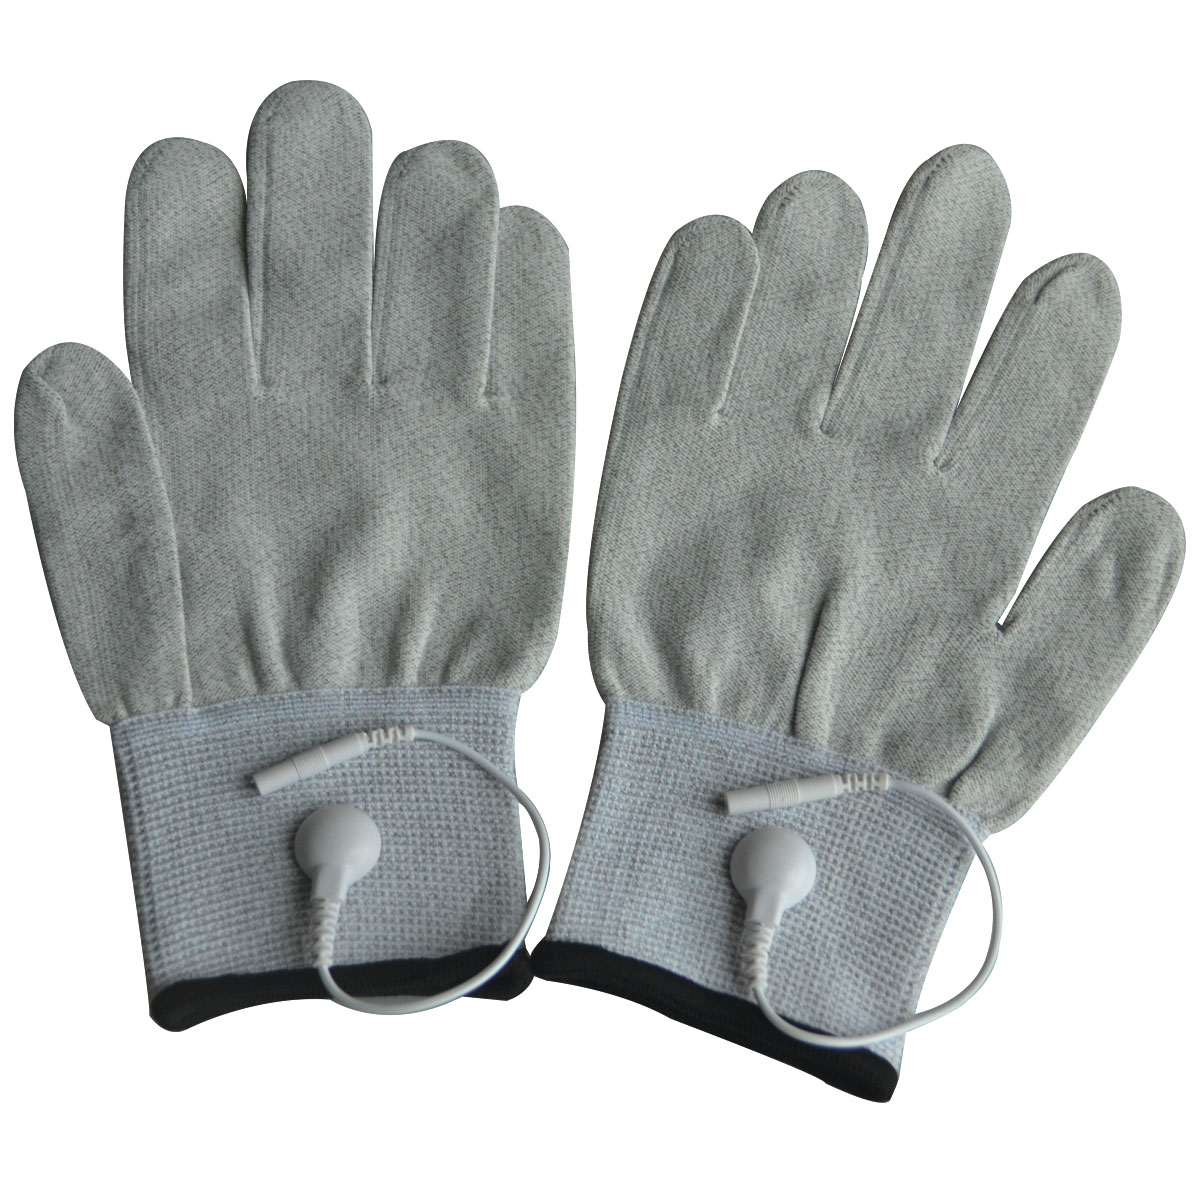 10 Pairs/Pack Conductive Massage Gloves physiotherapy electrotherapy electrode Gloves Use with Tens Massage Light Gray 10 Pairs/Pack Conductive Massage Gloves physiotherapy electrotherapy electrode Gloves Use with Tens Massage Light Gray